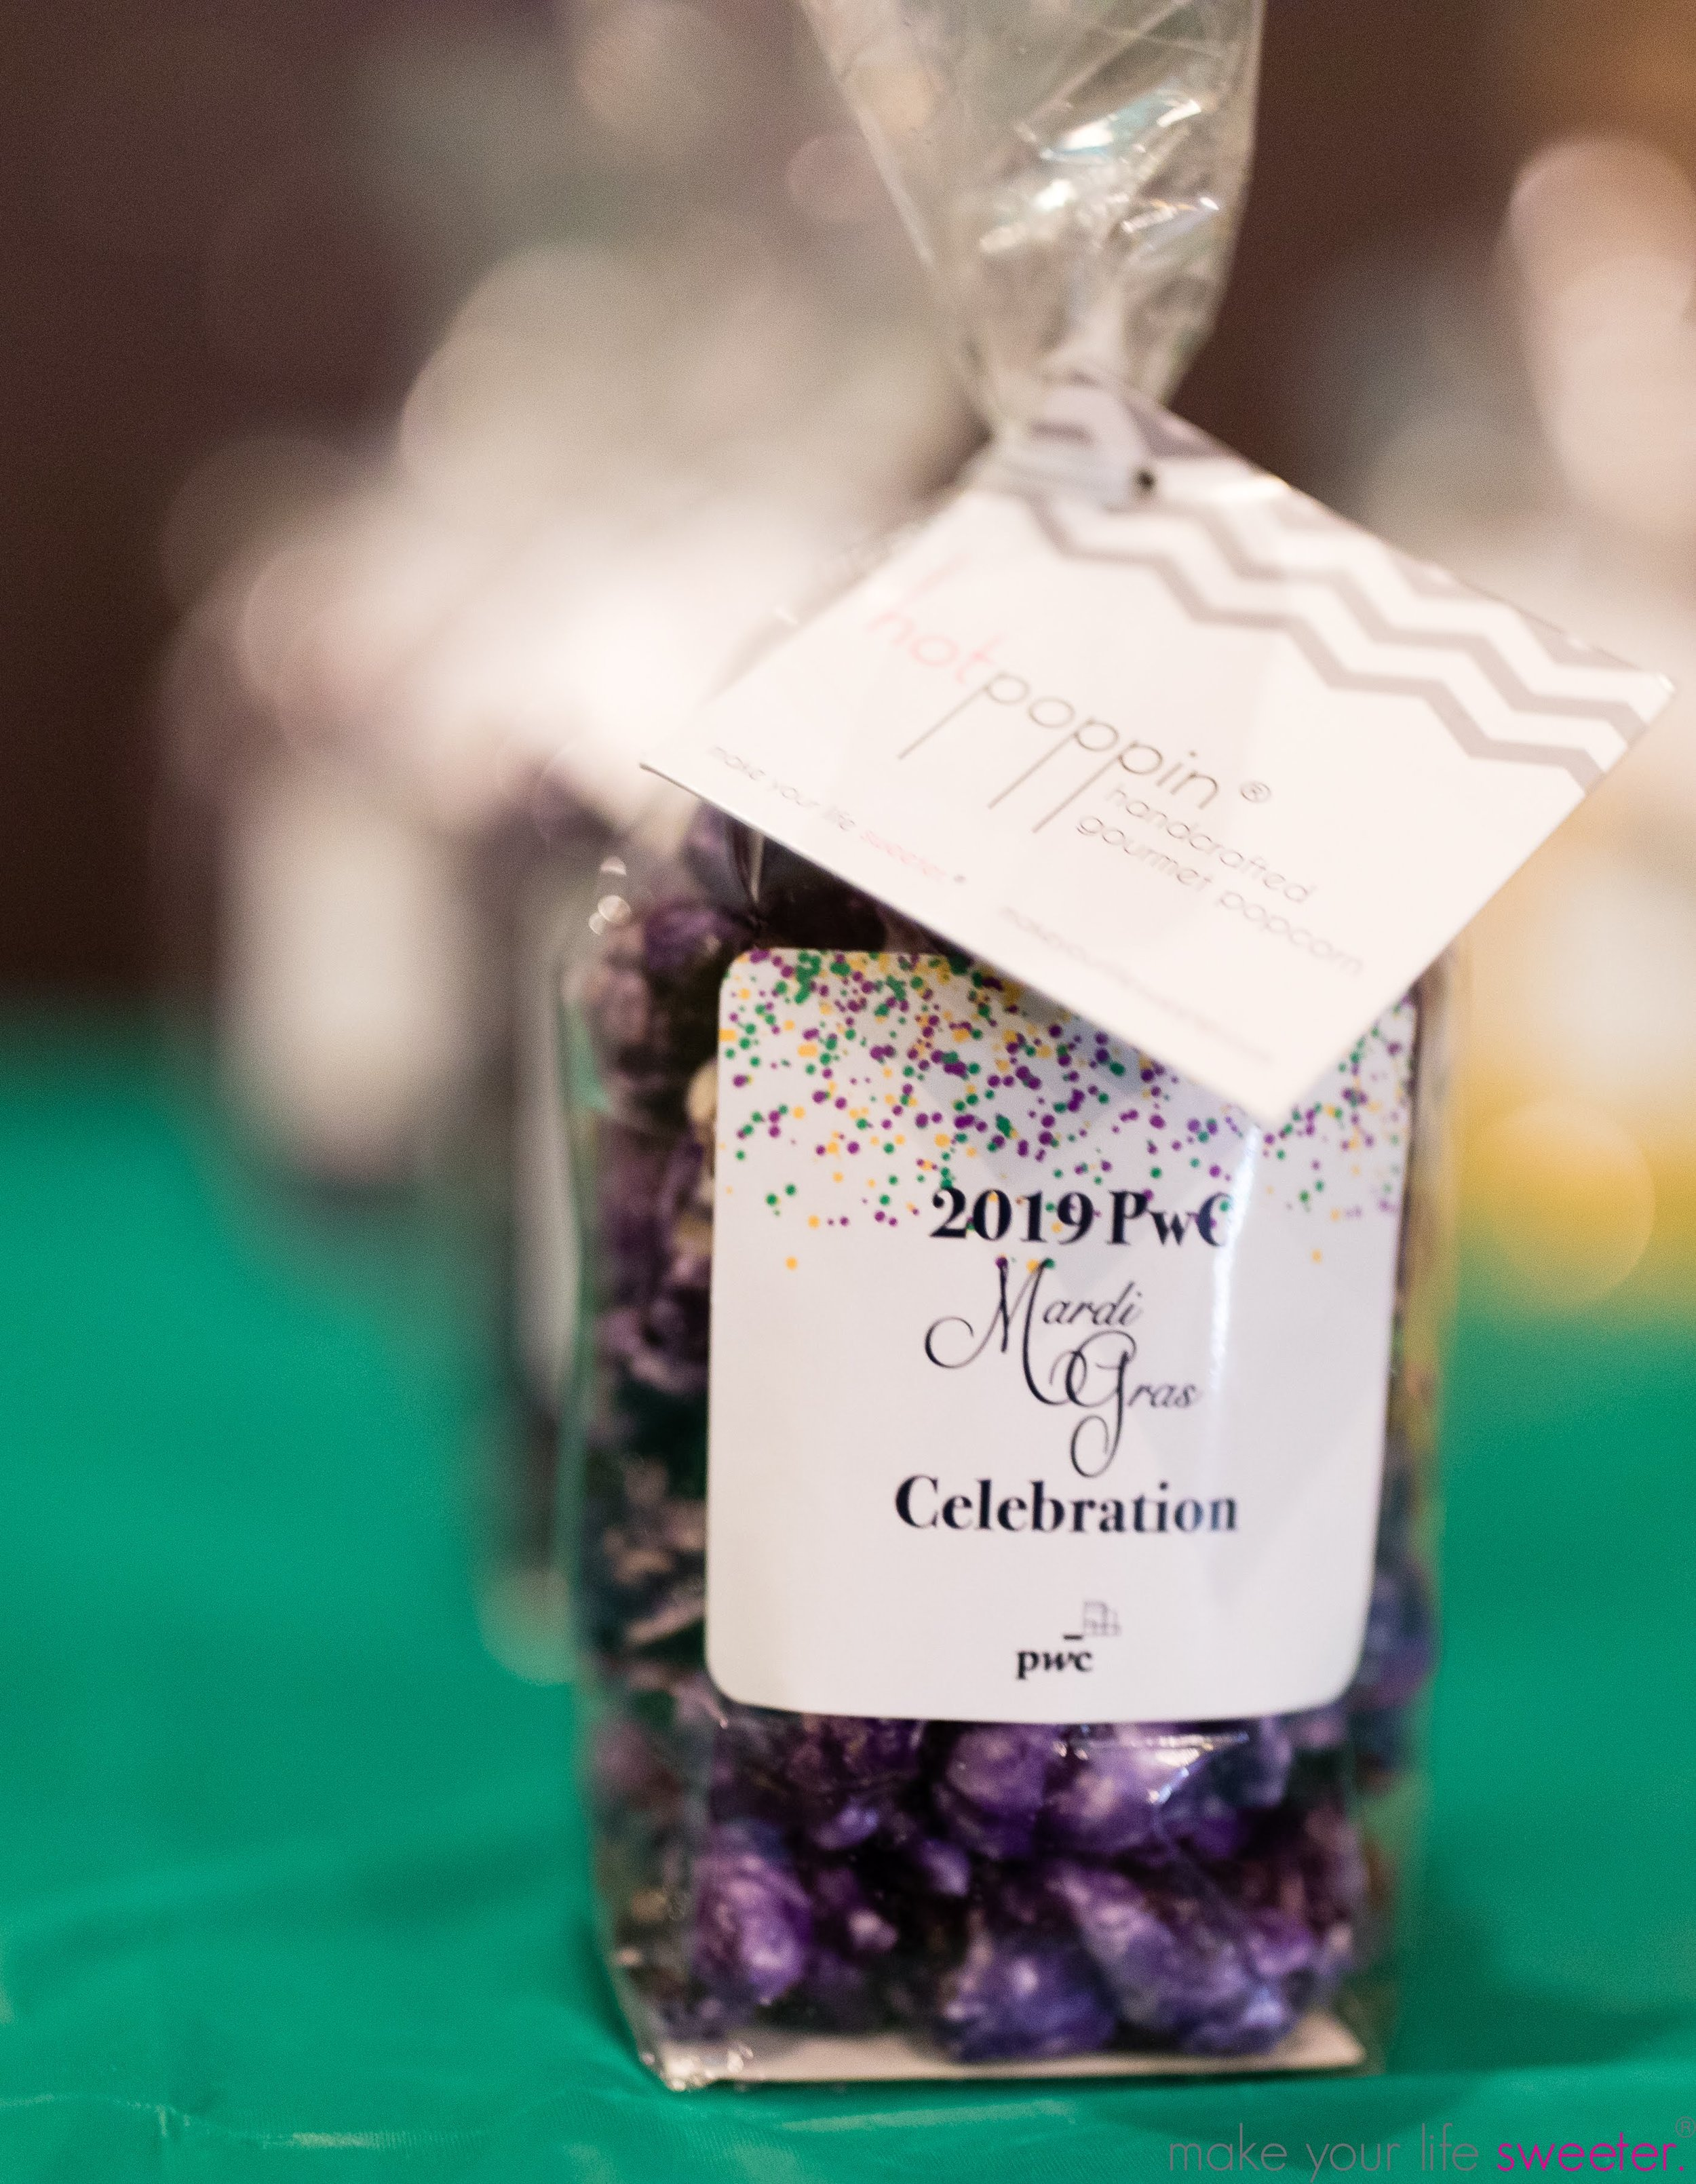 Make Your Life Sweeter Events - PWC New Orleans - Customized HotPoppin Gourmet Popcorn